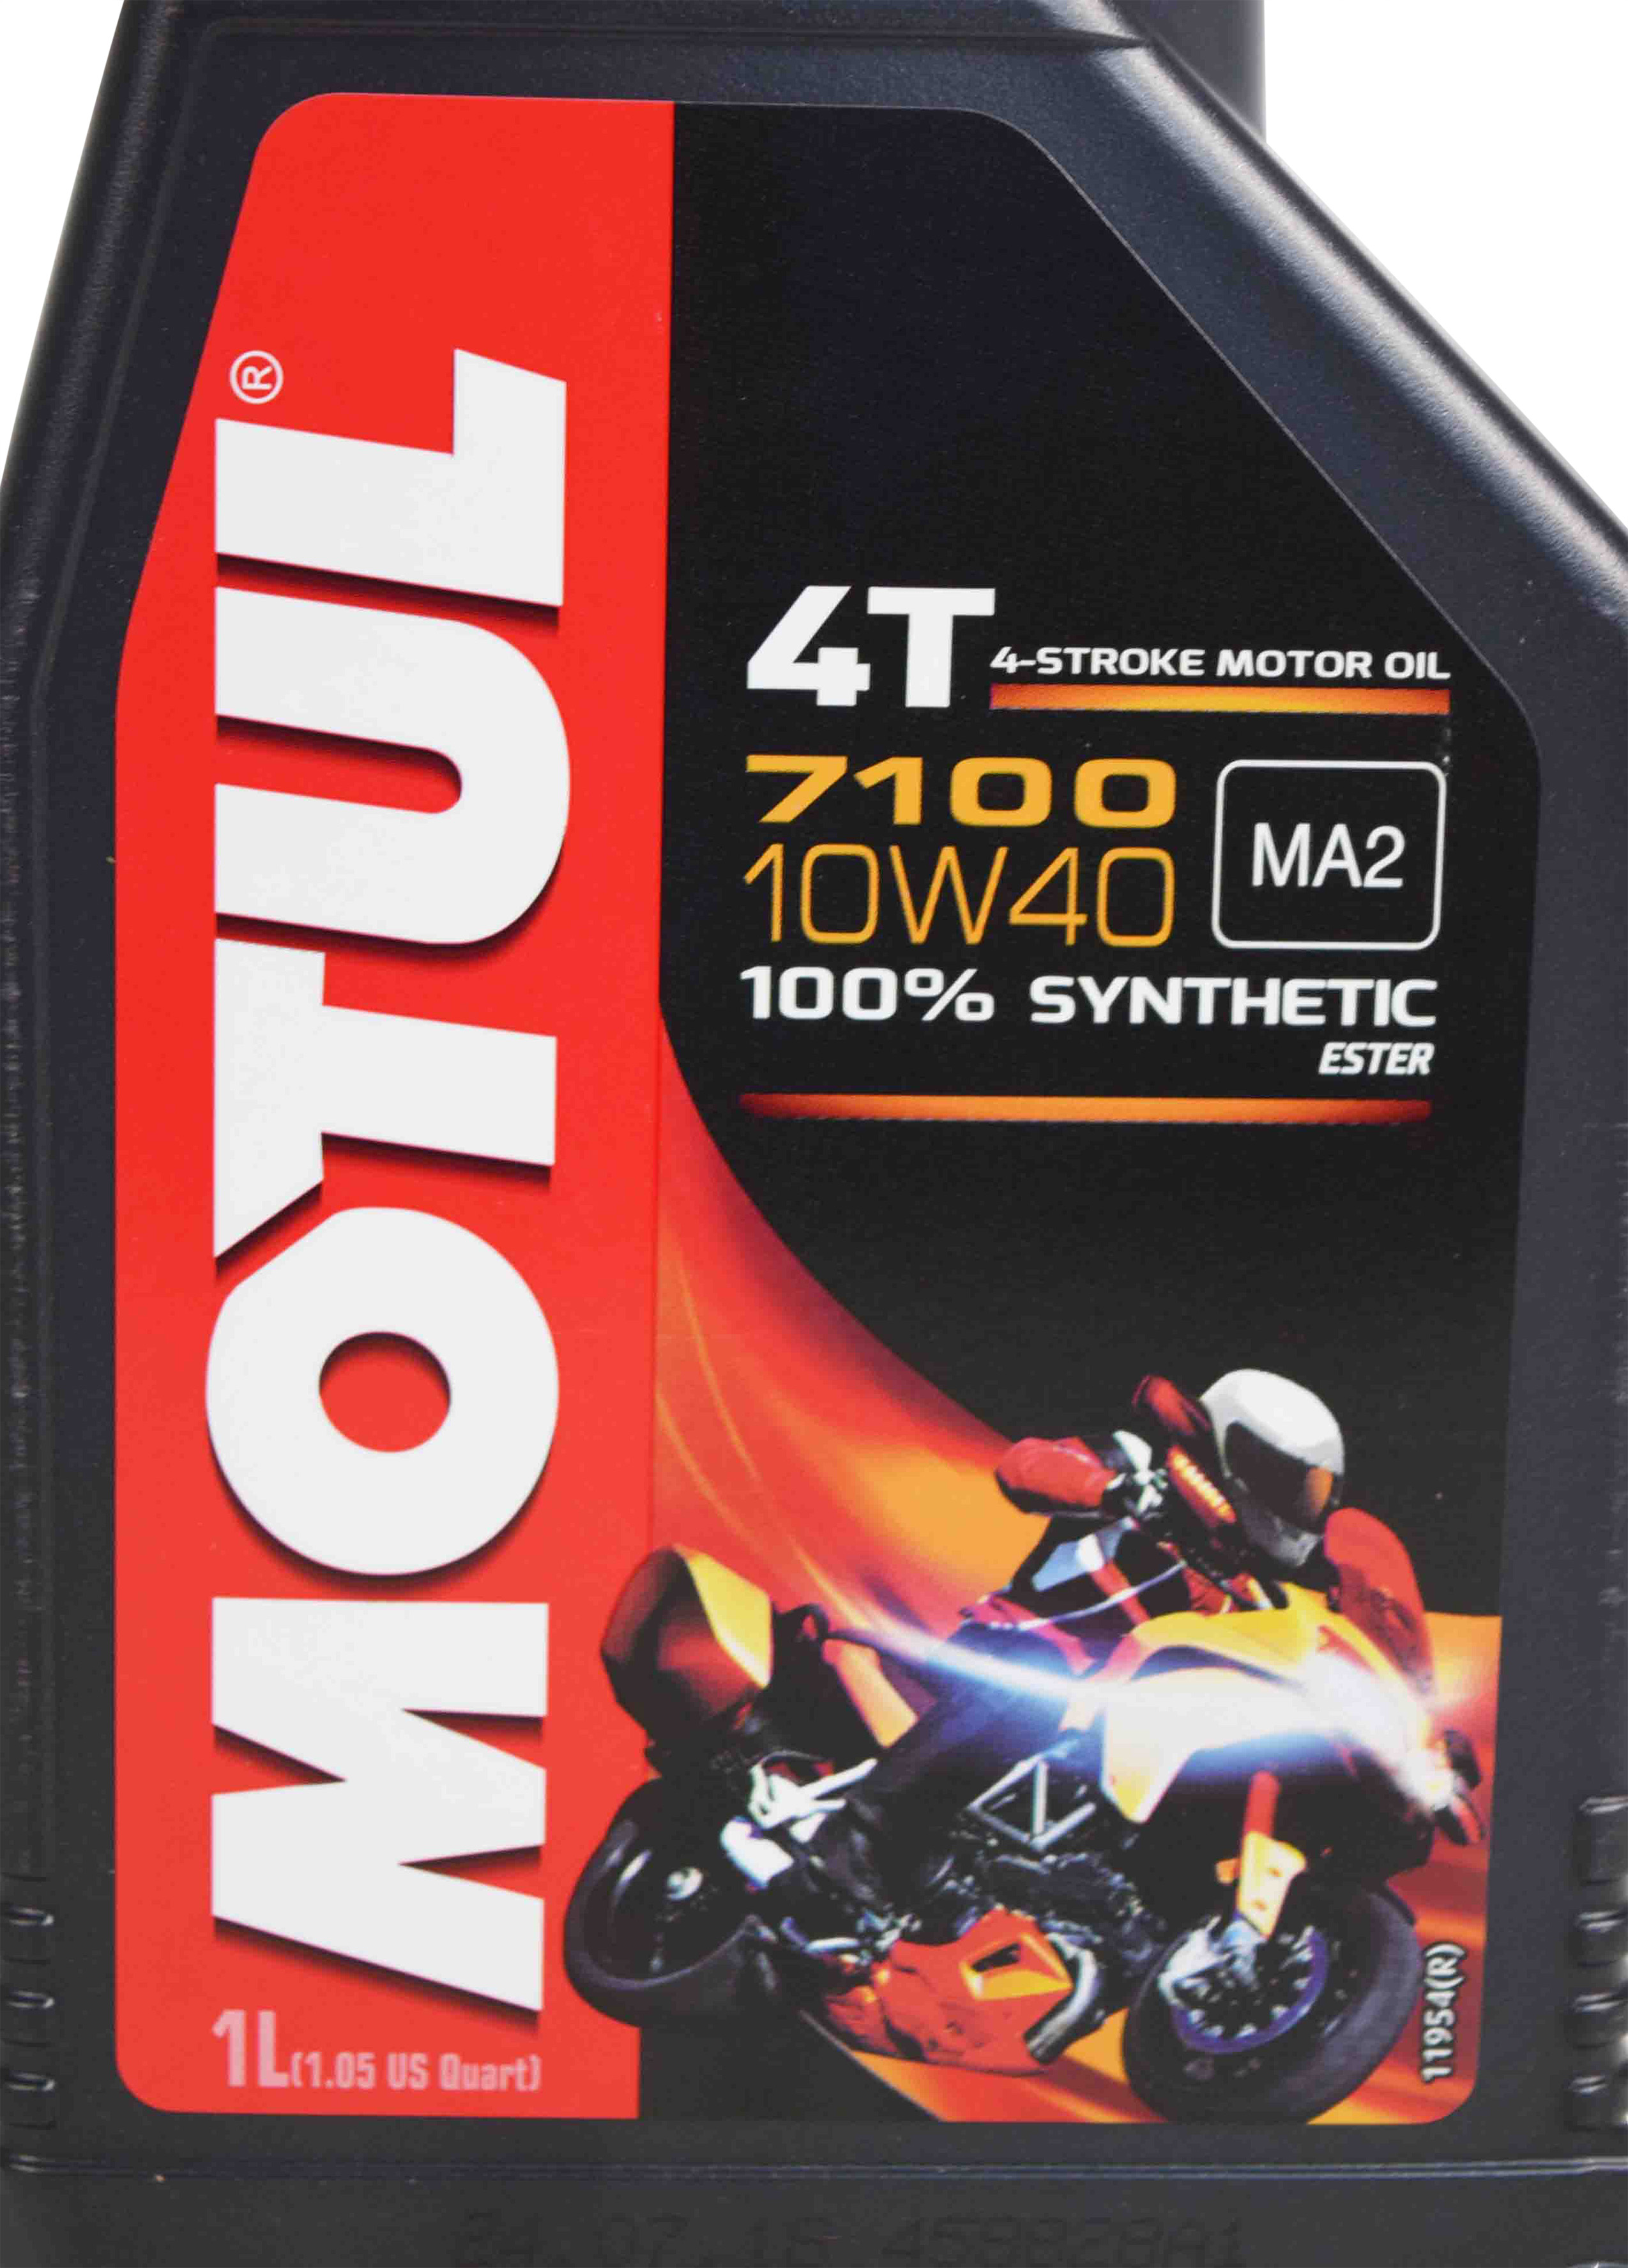 Motul-104091-7100-Ester-4T-Fully-Synthetic-10W-40-Petrol-Engine-Oil-for-Bikes-1-L-image-5